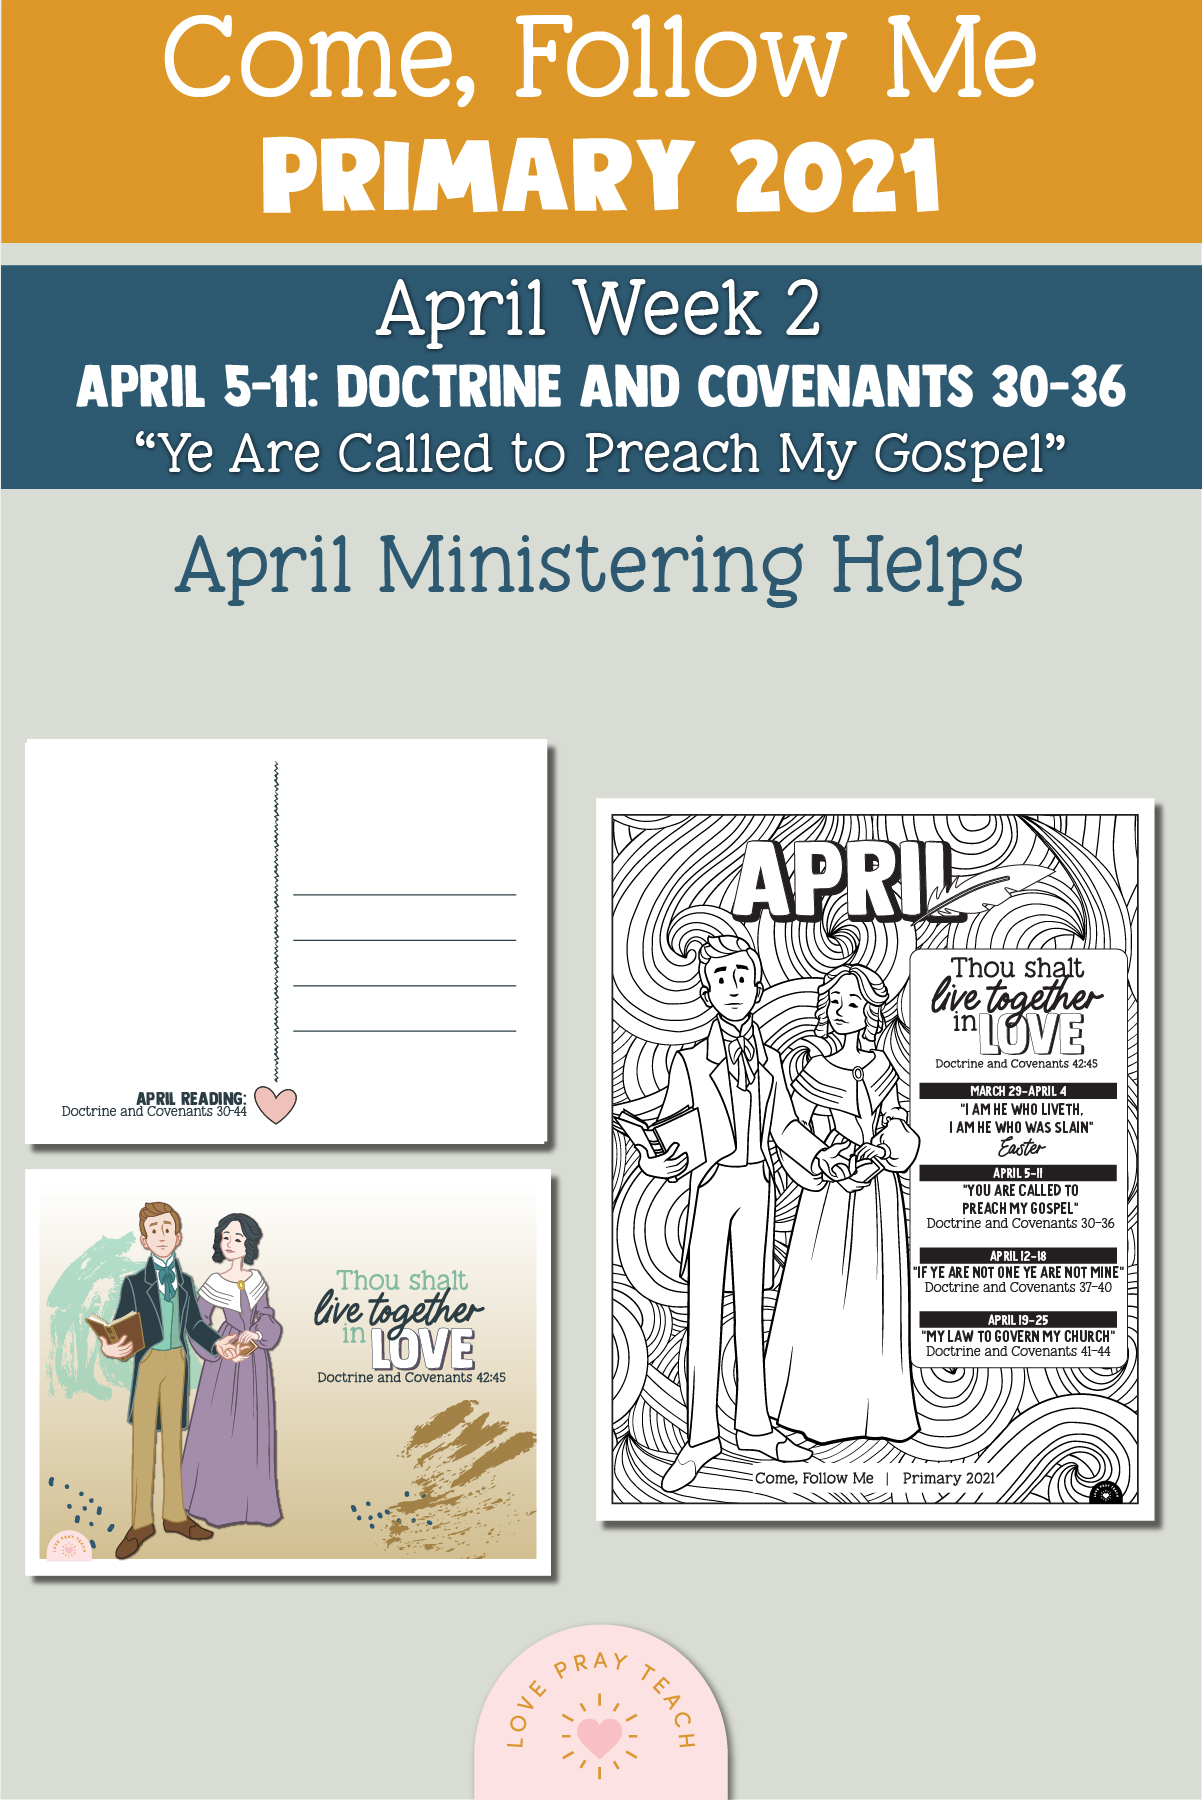 "Come, Follow Me for Primary 2021 April Week 2 Doctrine and Covenants 30-36 ""You Are Called to Preach My Gospel"" Printable Lesson Materials"